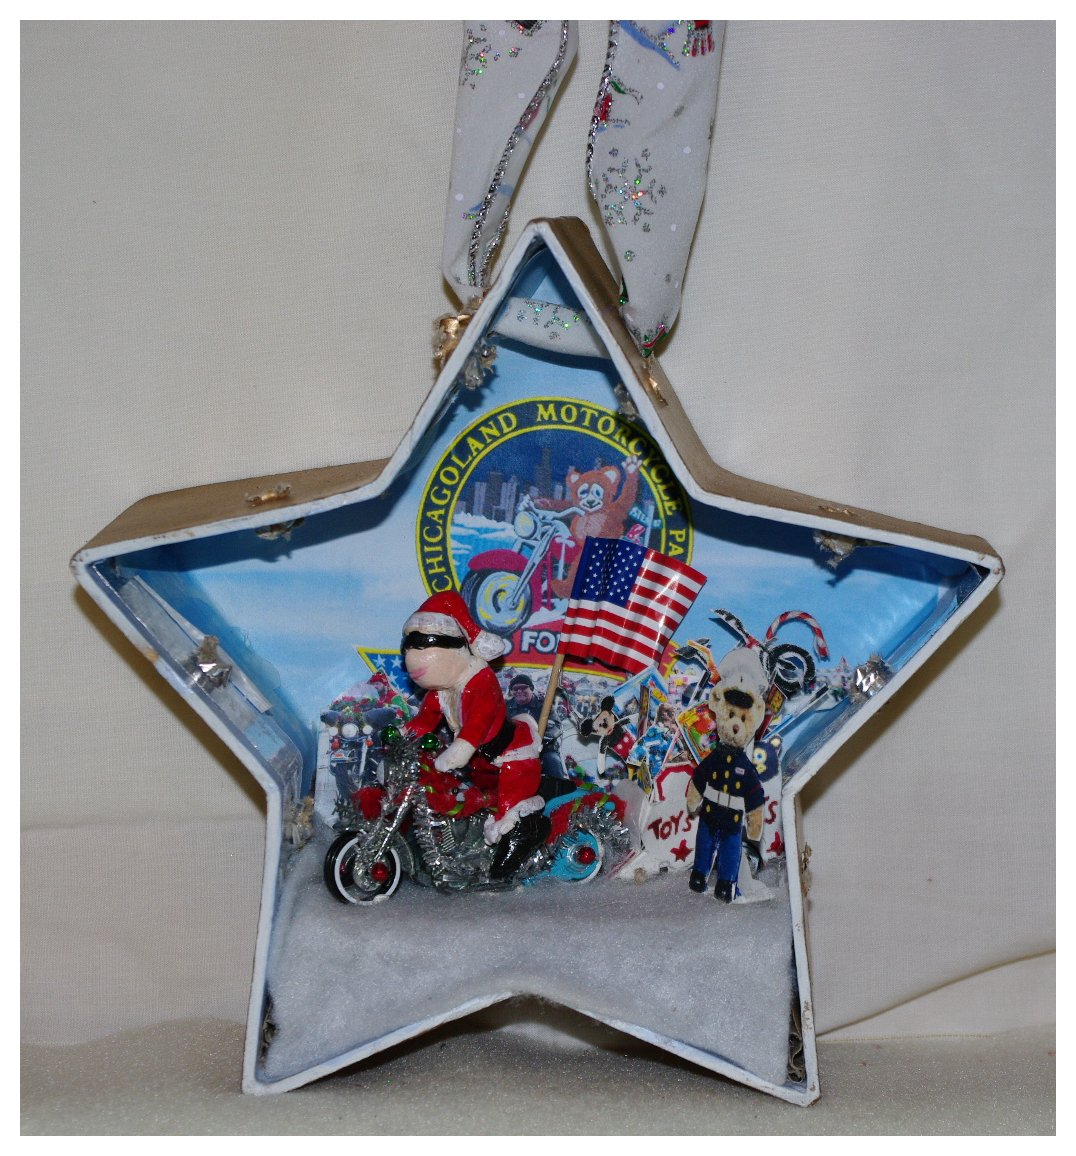 Individual ornament boxes - The Following Links Go To Pages Showing Trees And Ornaments From Previous Years All Of Which Have The Artistry And Supervision Of Kathy Cunningham